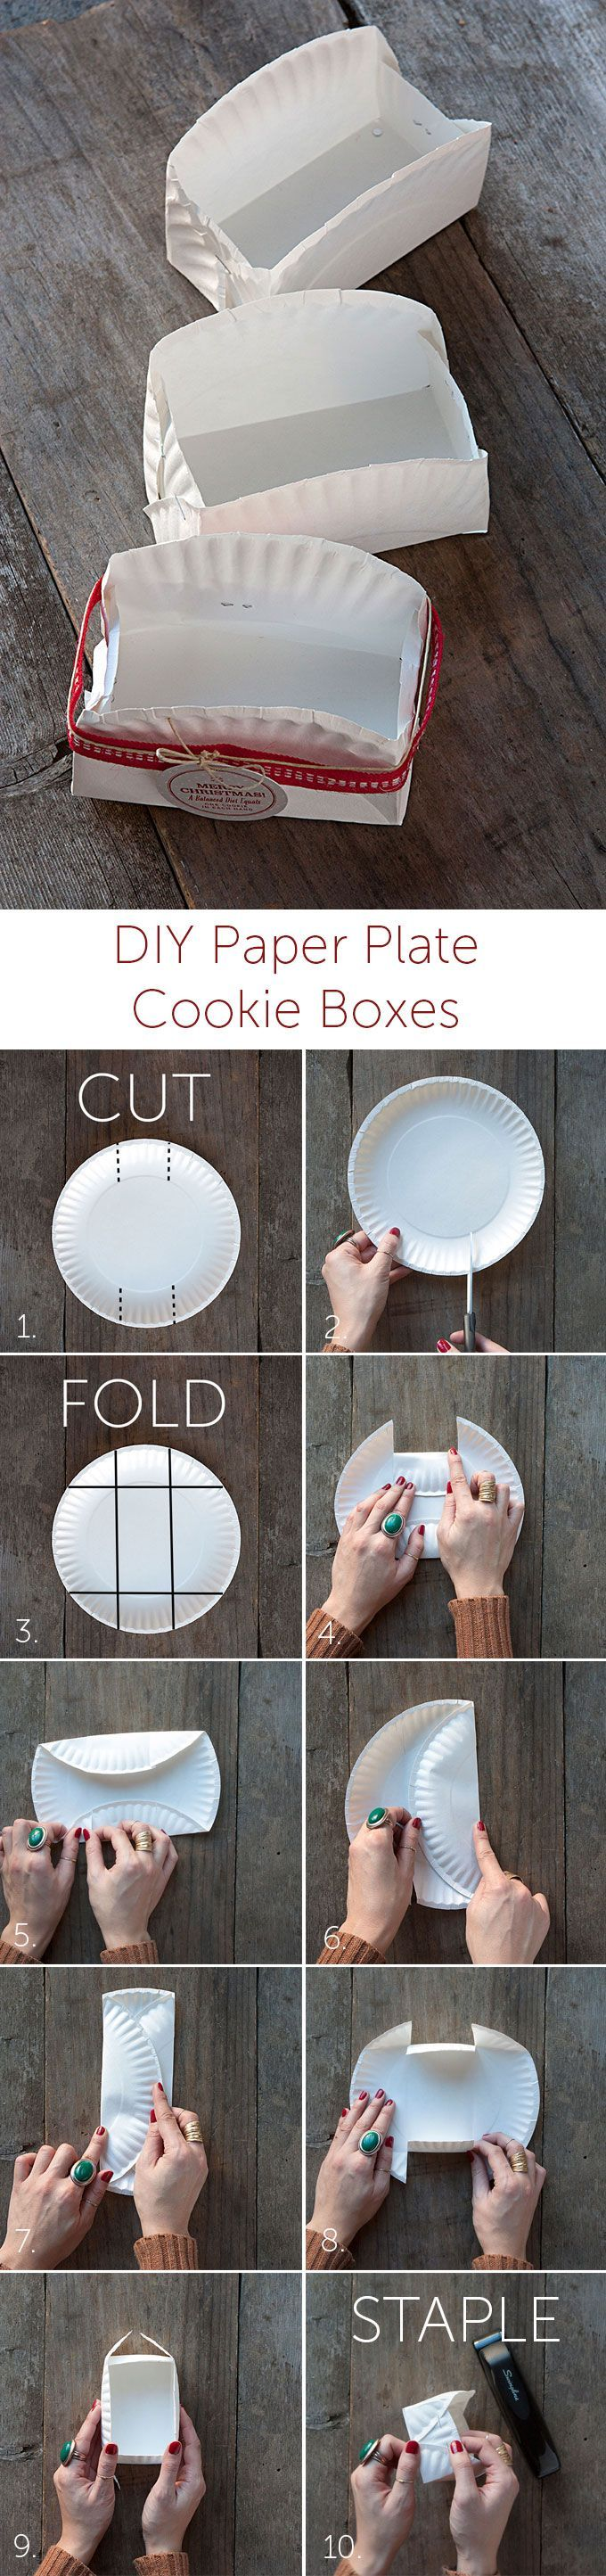 DIY Paper Plate Cookie Boxes | Evermine Blog | www.evermine.com #christmas #holidays (Diy Projects For Gifts)